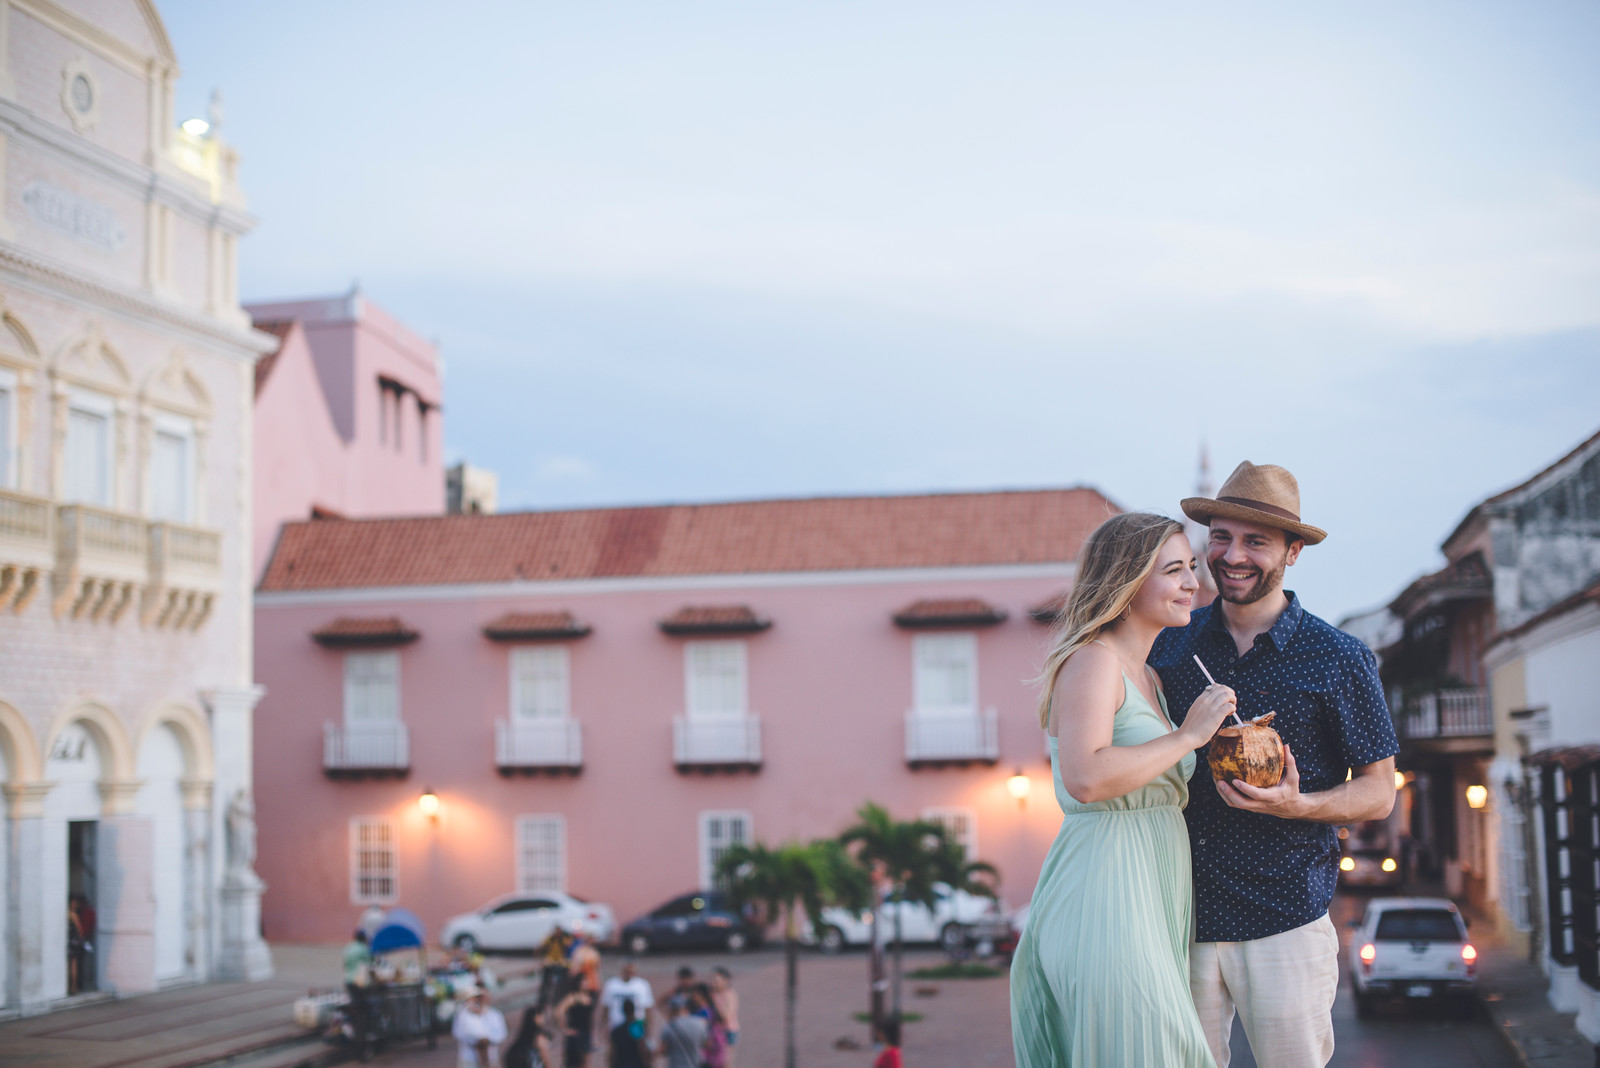 Flytographer Juan Felipe in Cartagena